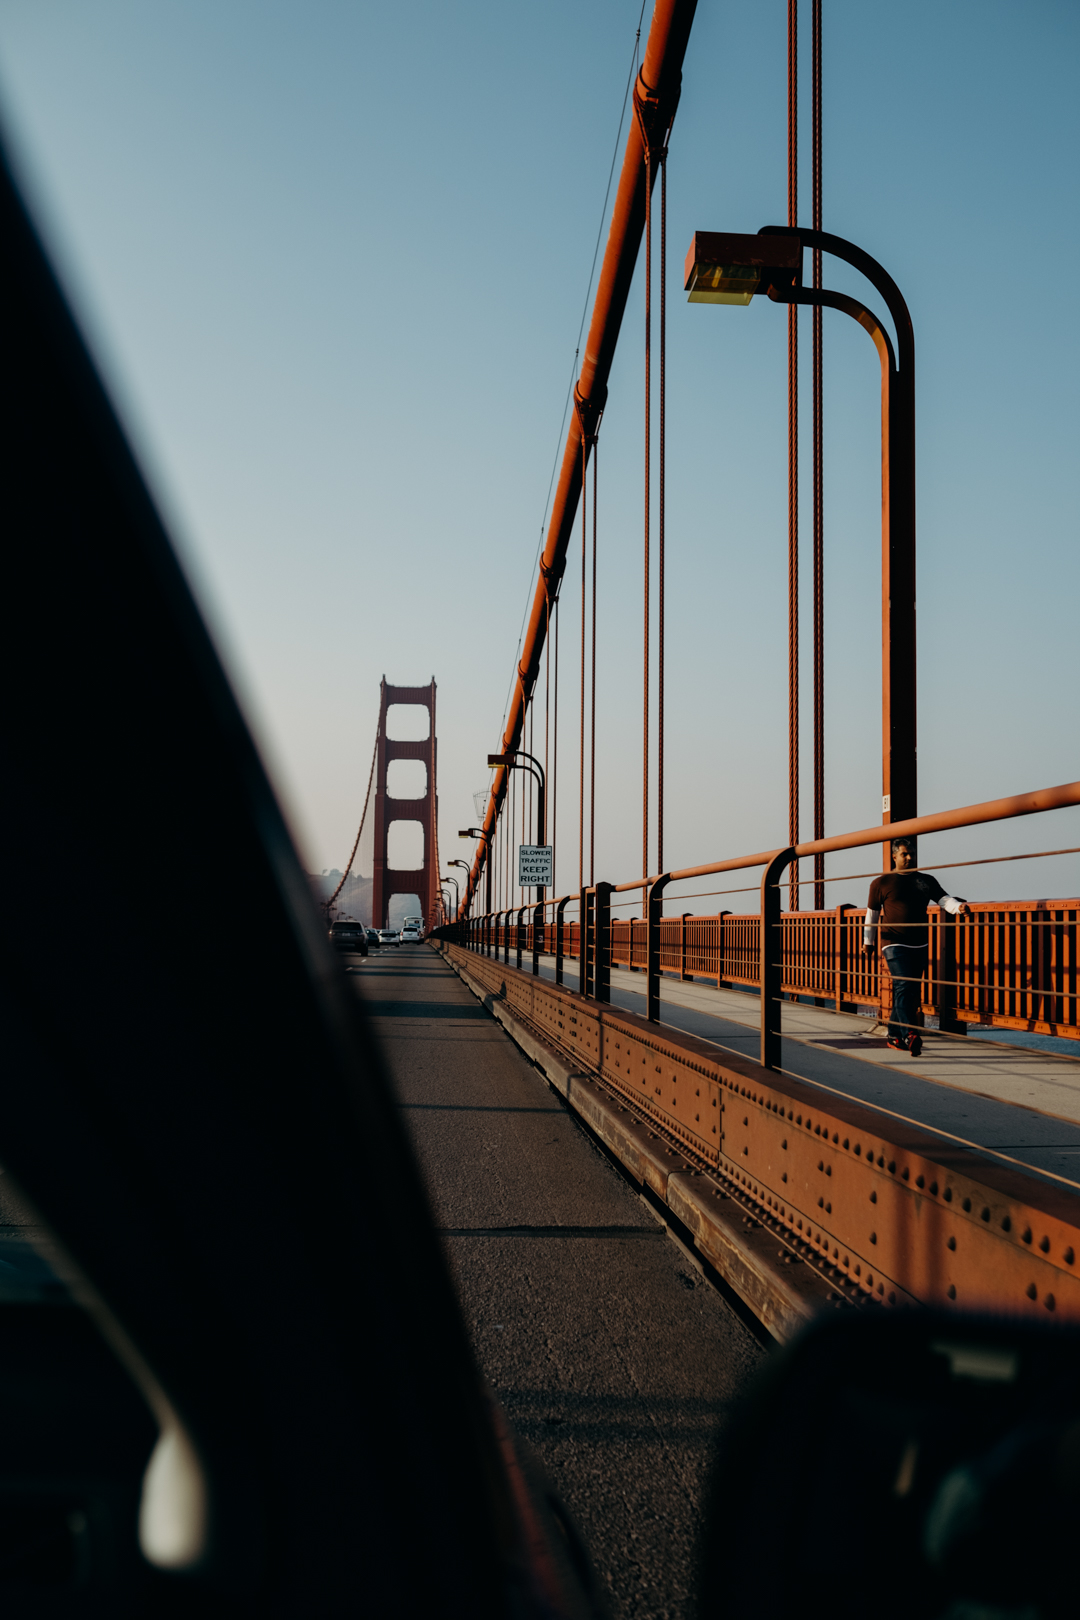 20170831_San Francisco Travel Blog_3.jpg